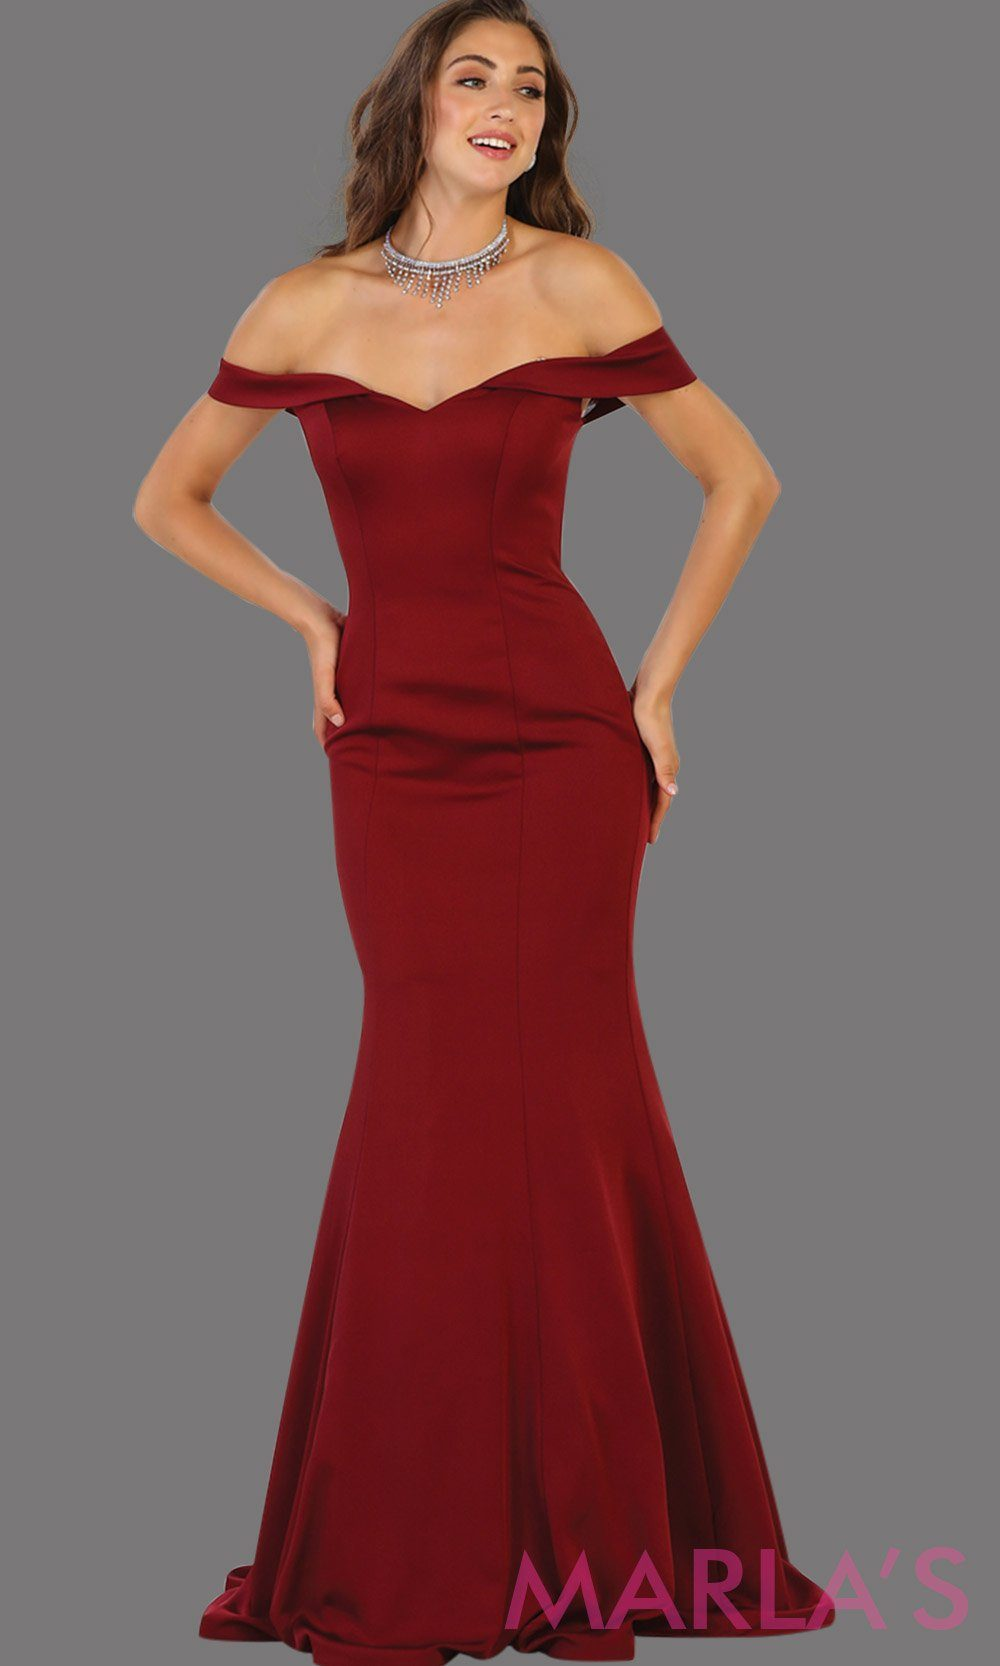 Long off shoulder dark red  fitted mermaid dress. This sleek and sexy burgundy dress is perfect for bridesmaid dress, formal wedding party, wedding guest dress, gala, charity event dress. Available in plus size